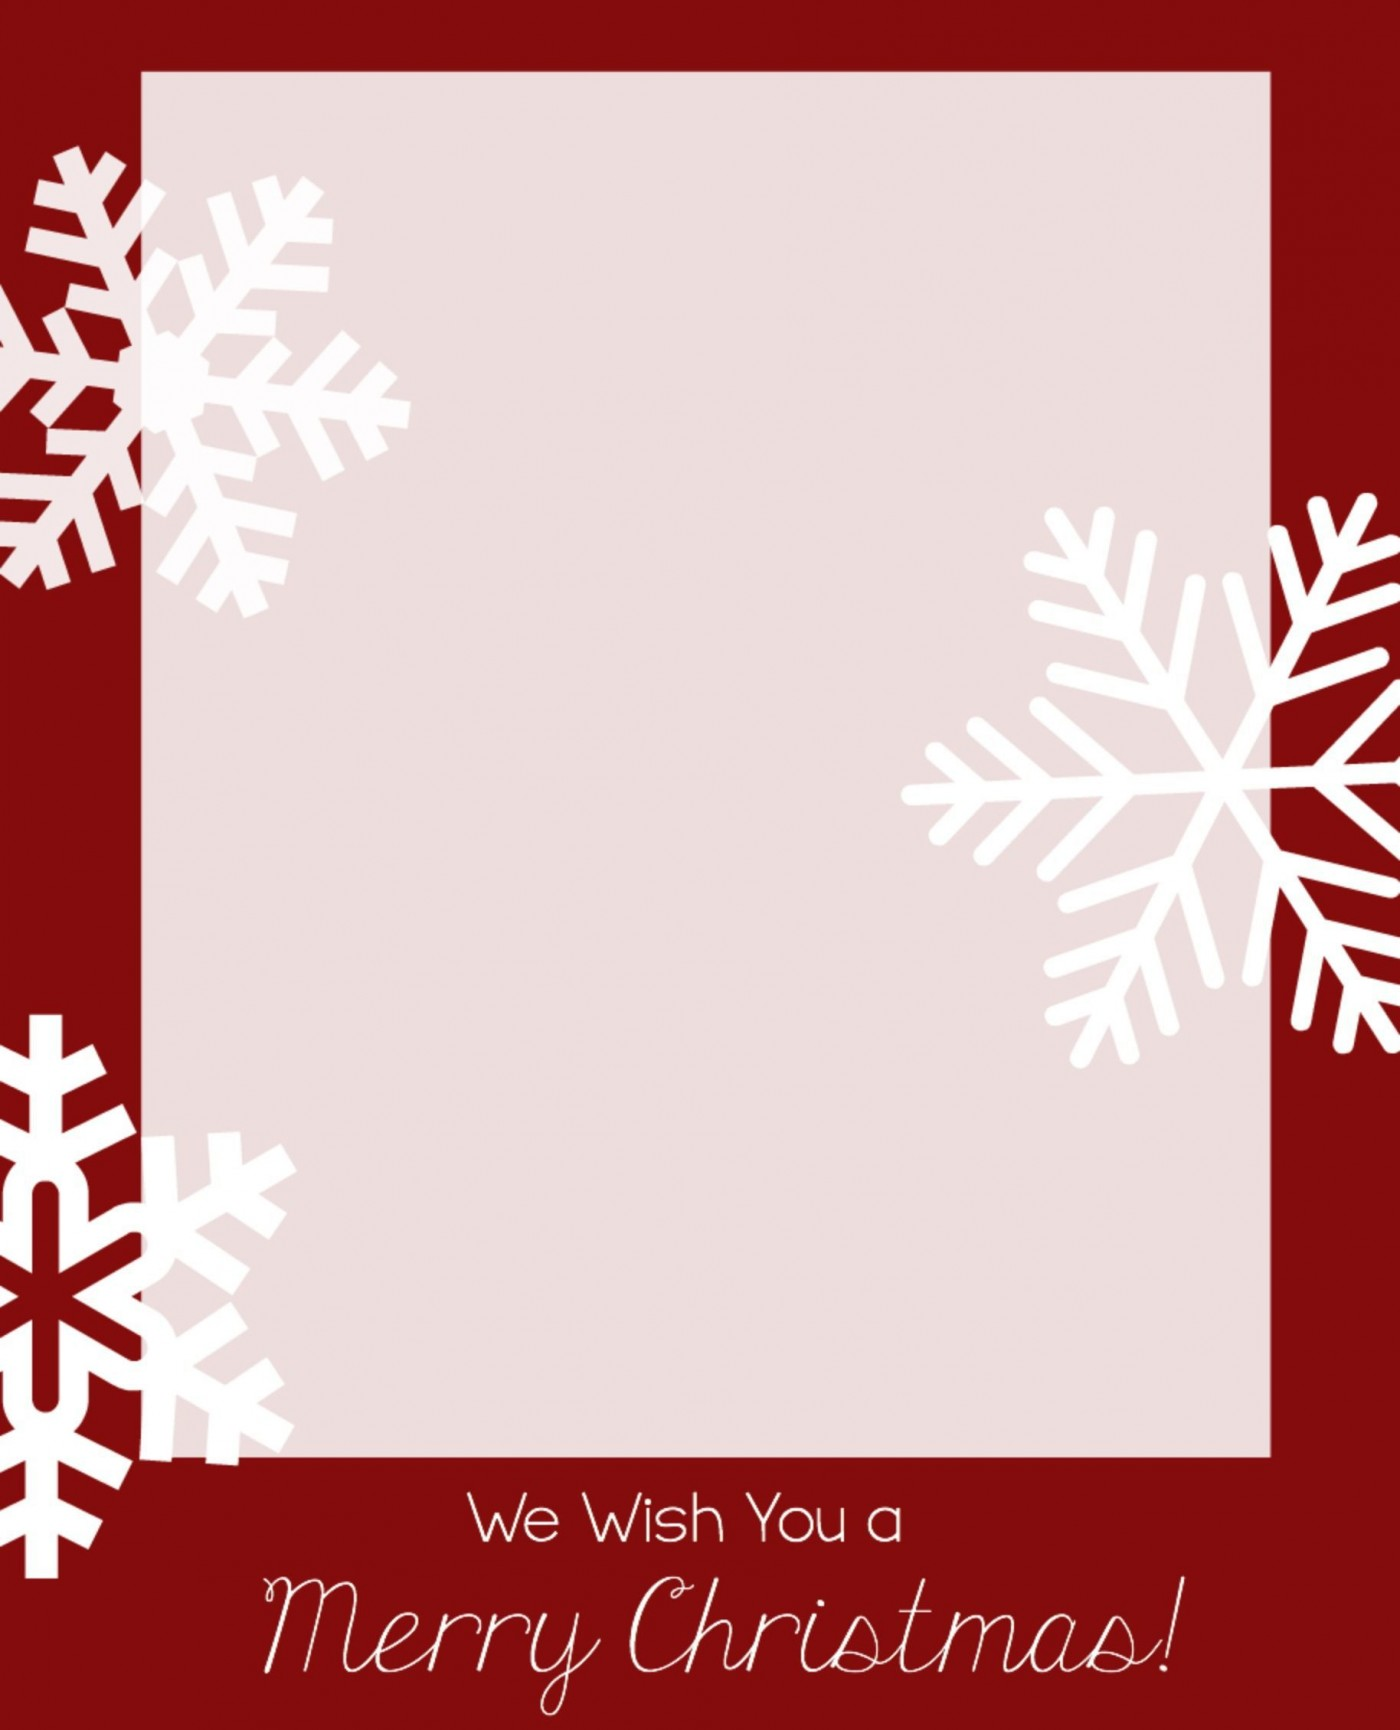 004 Unique Free Download Holiday Card Template Photo 1400